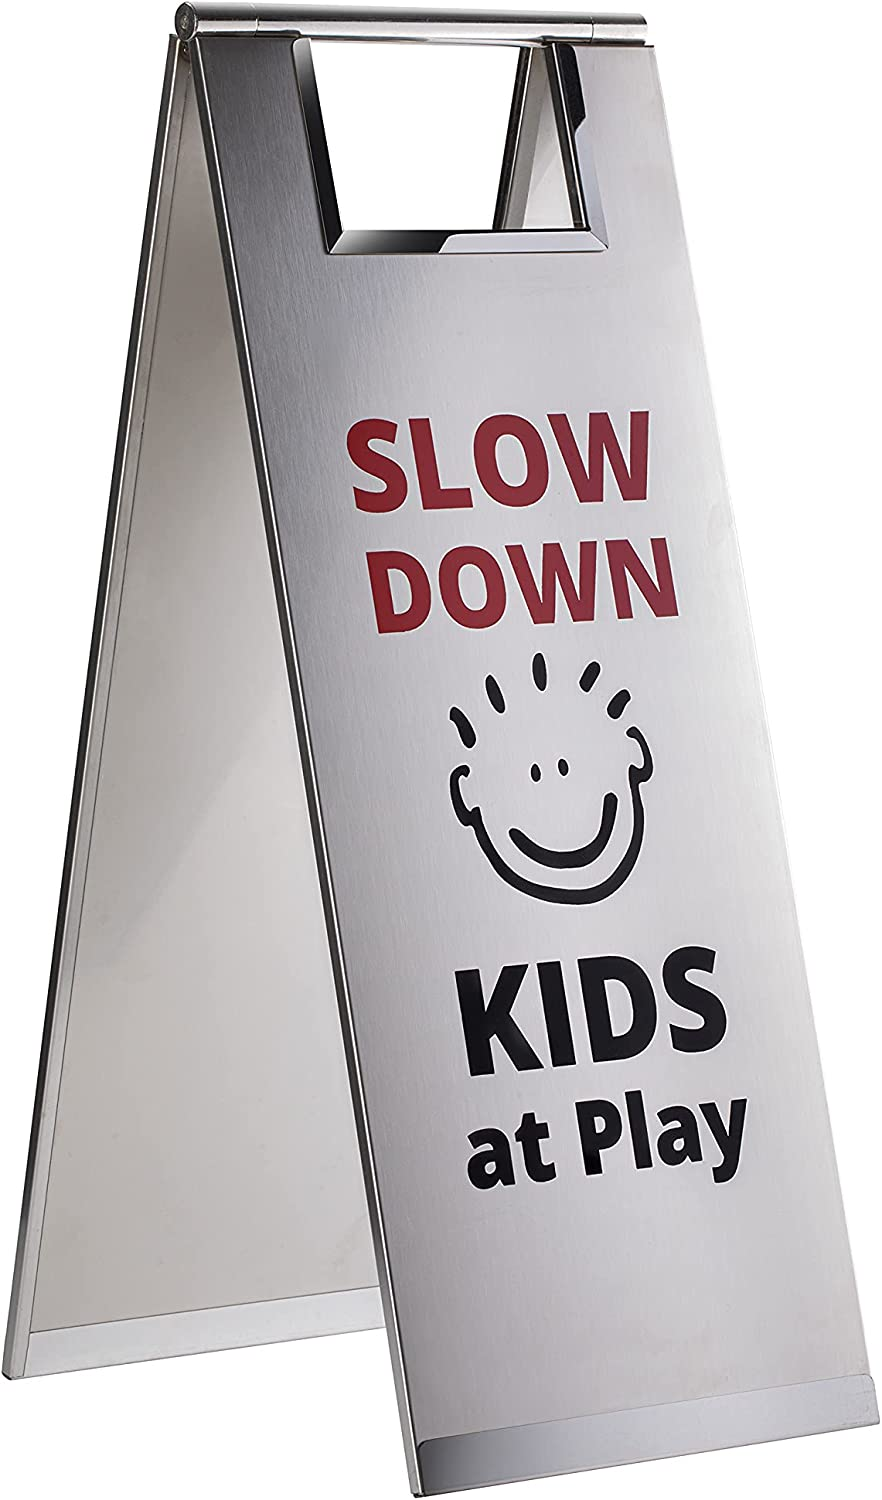 Kids at Play Safety Sign, Stainless Steel by Jolli Designs